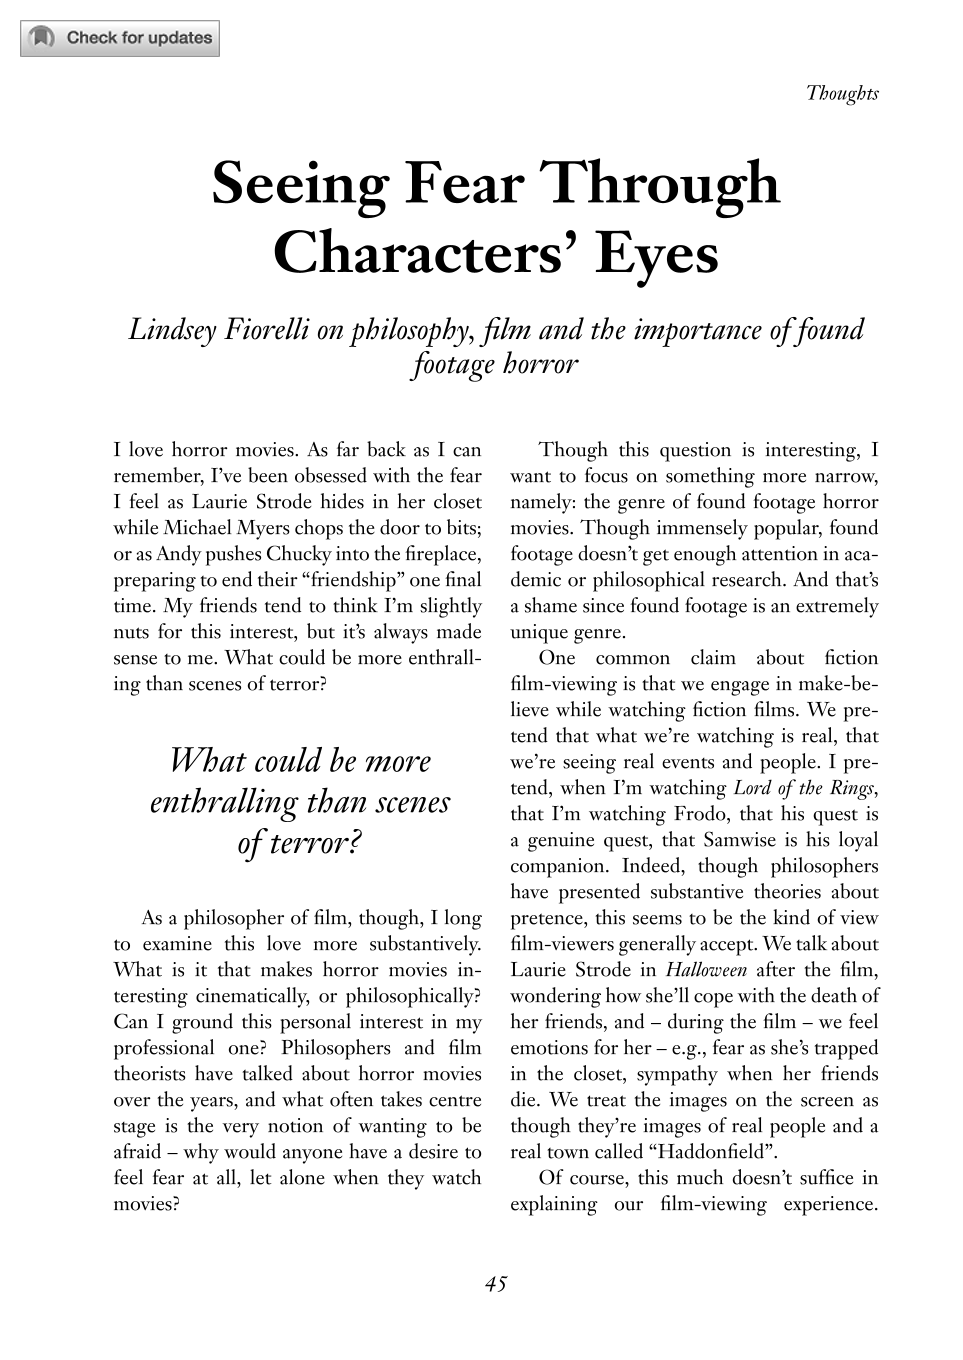 Seeing Fear Through Characters' Eyes - Lindsey Fiorelli